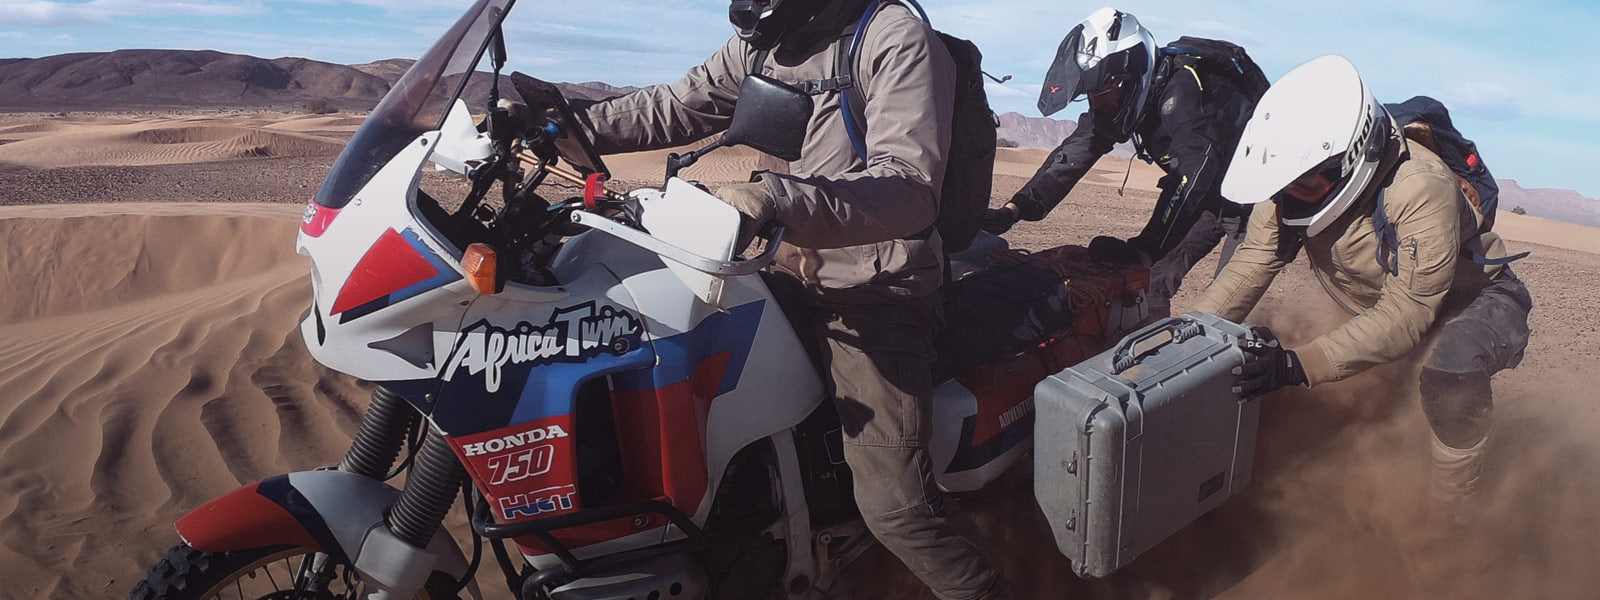 Riding With The Honda Revival Team Quad LockR USA